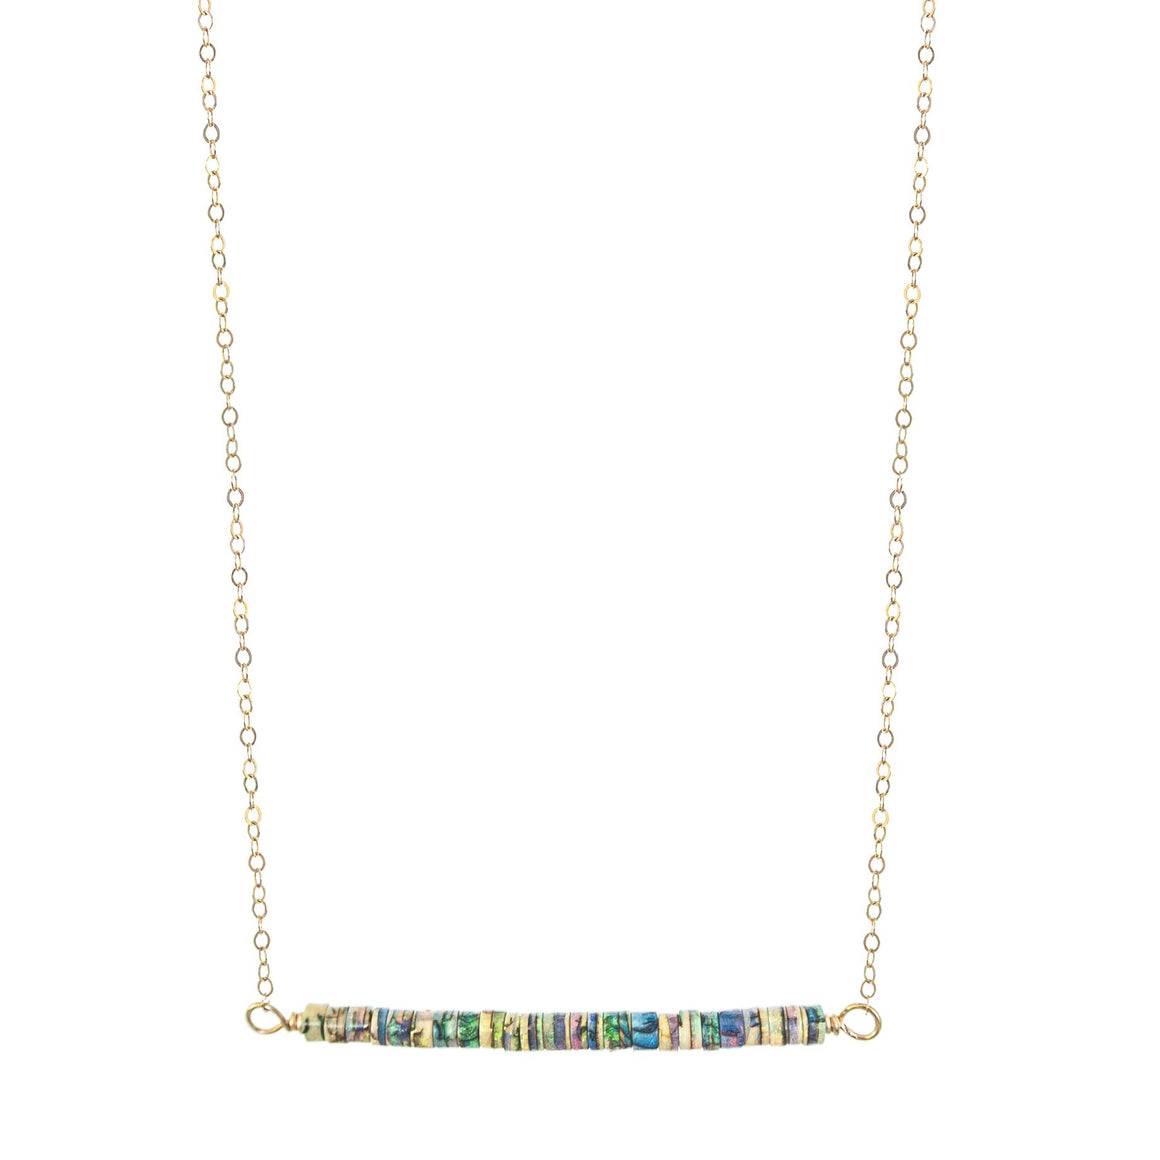 14k gold fill chain on opal rondel bead bar Balance necklace by Original Sin Jewelry